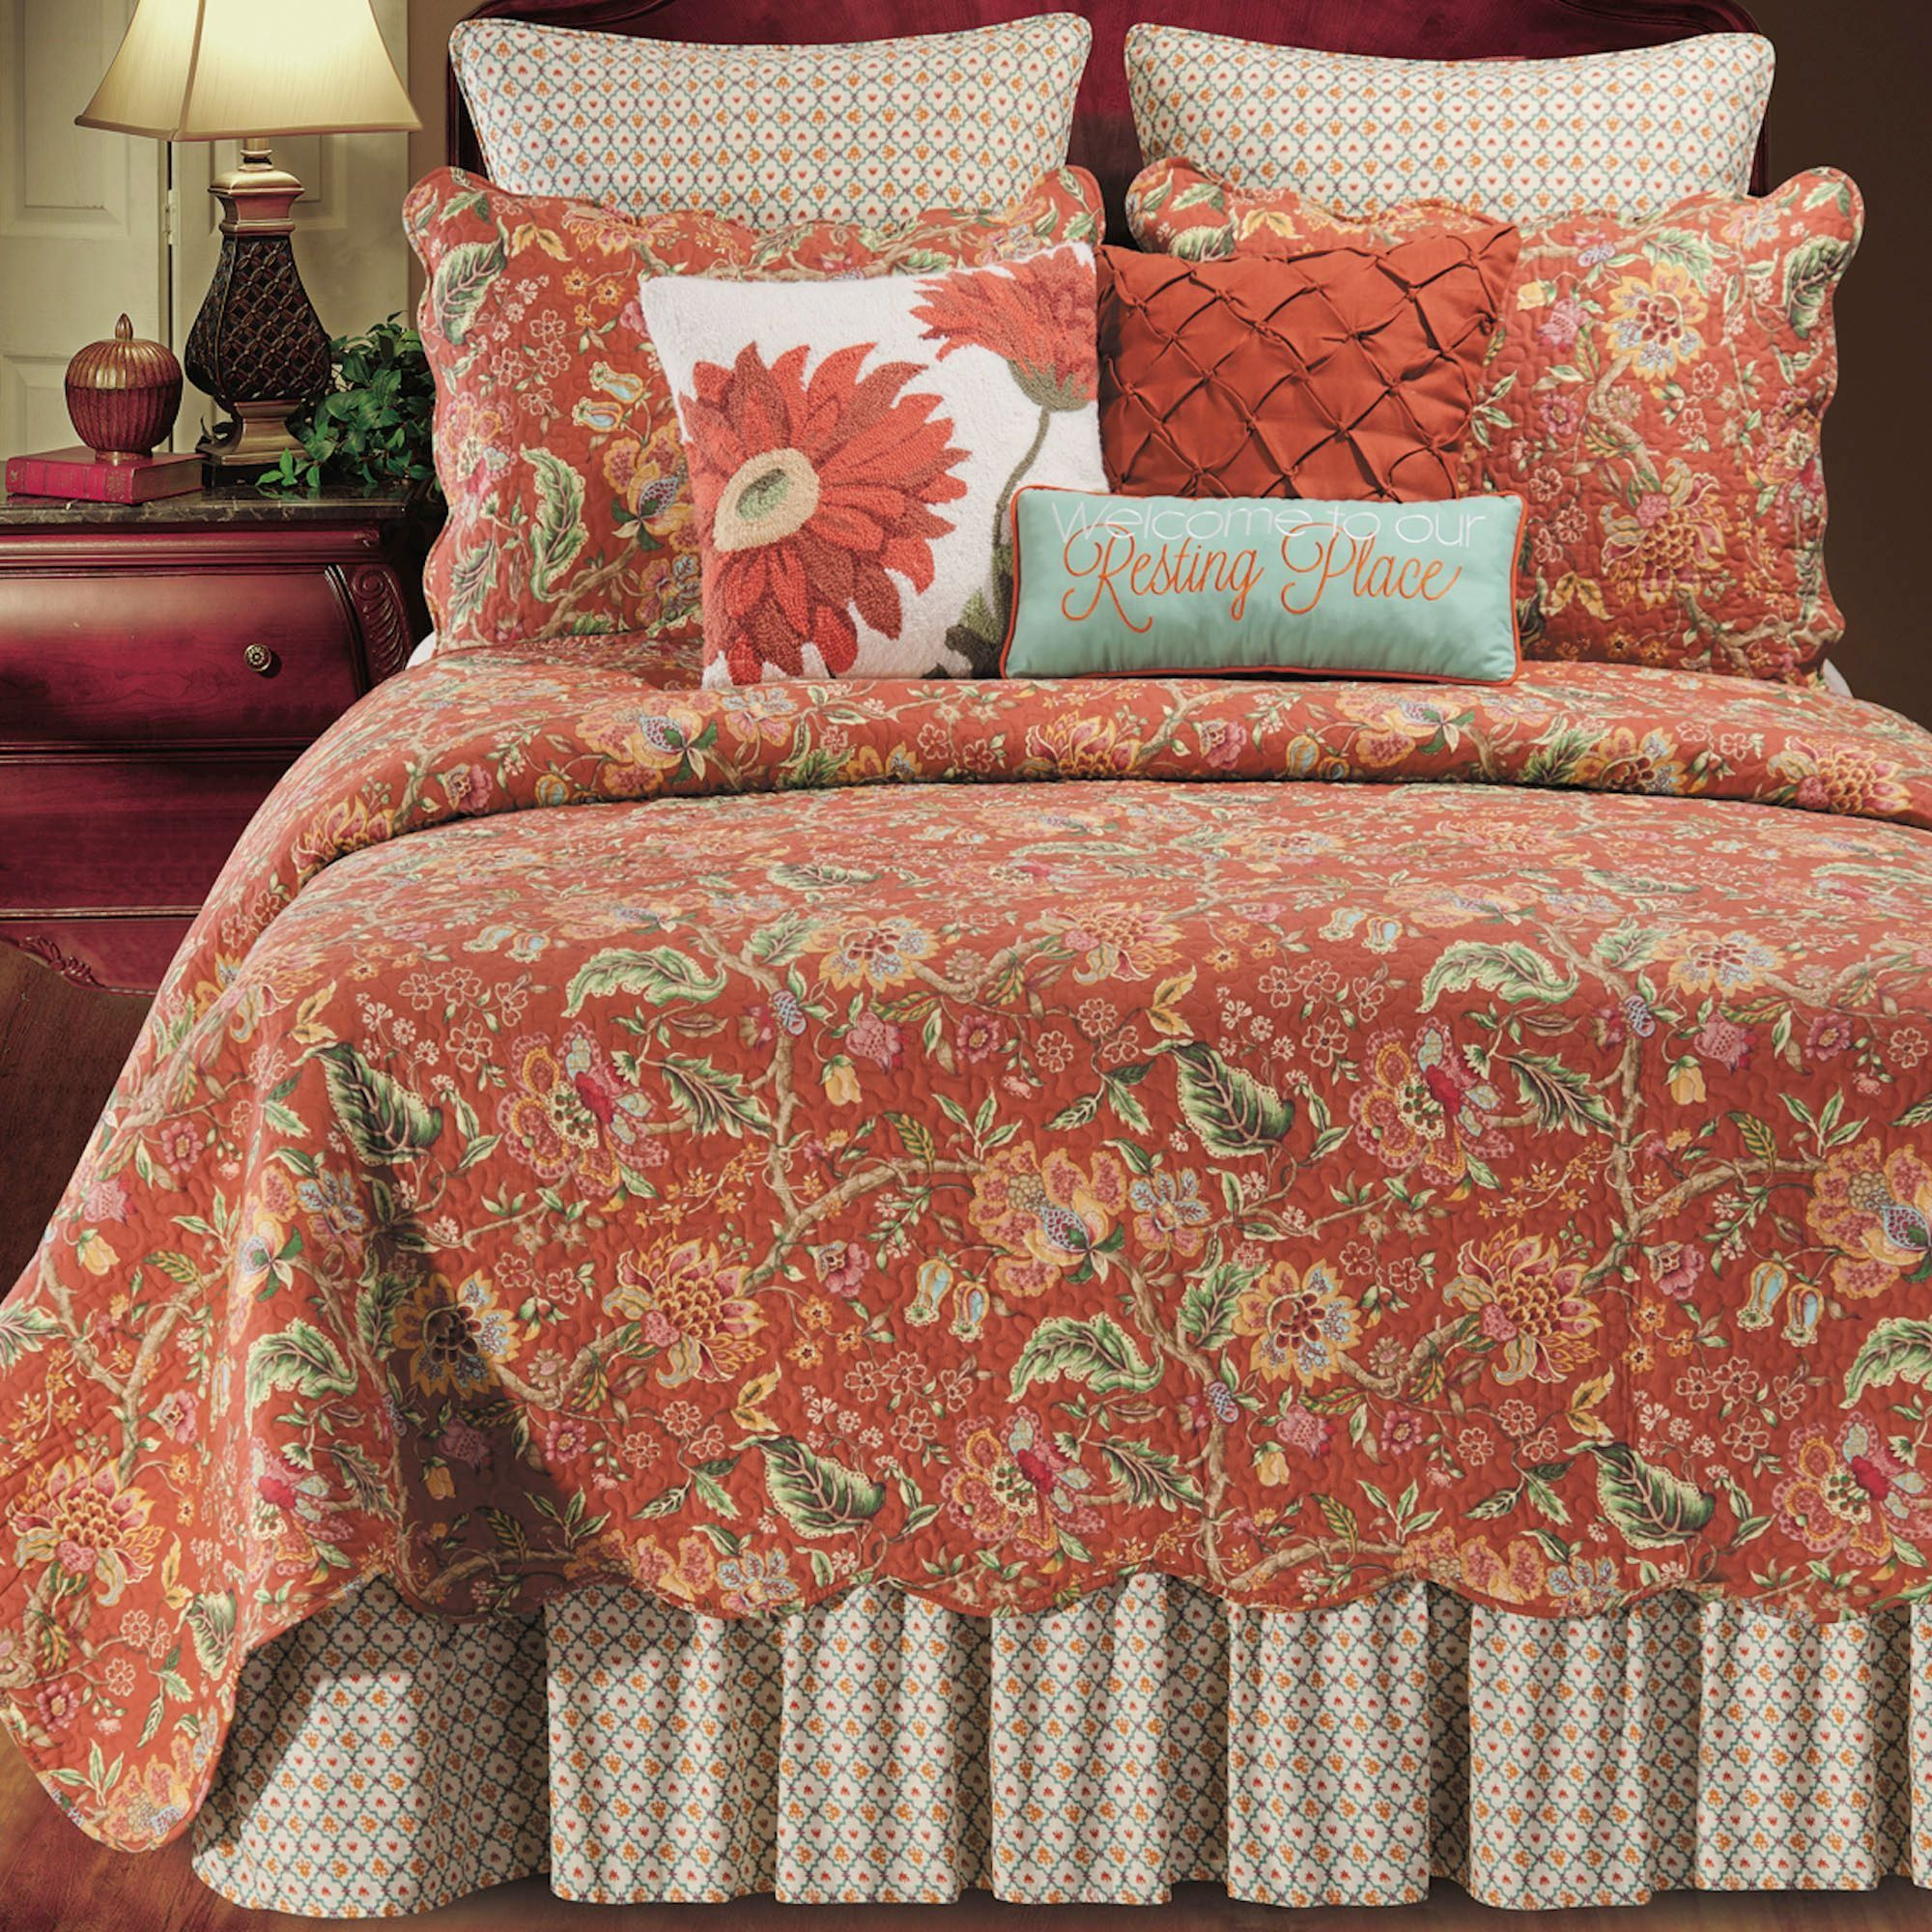 Adele Jacobean Floral Rust Quilt Bedding In 2020 Bed Spreads